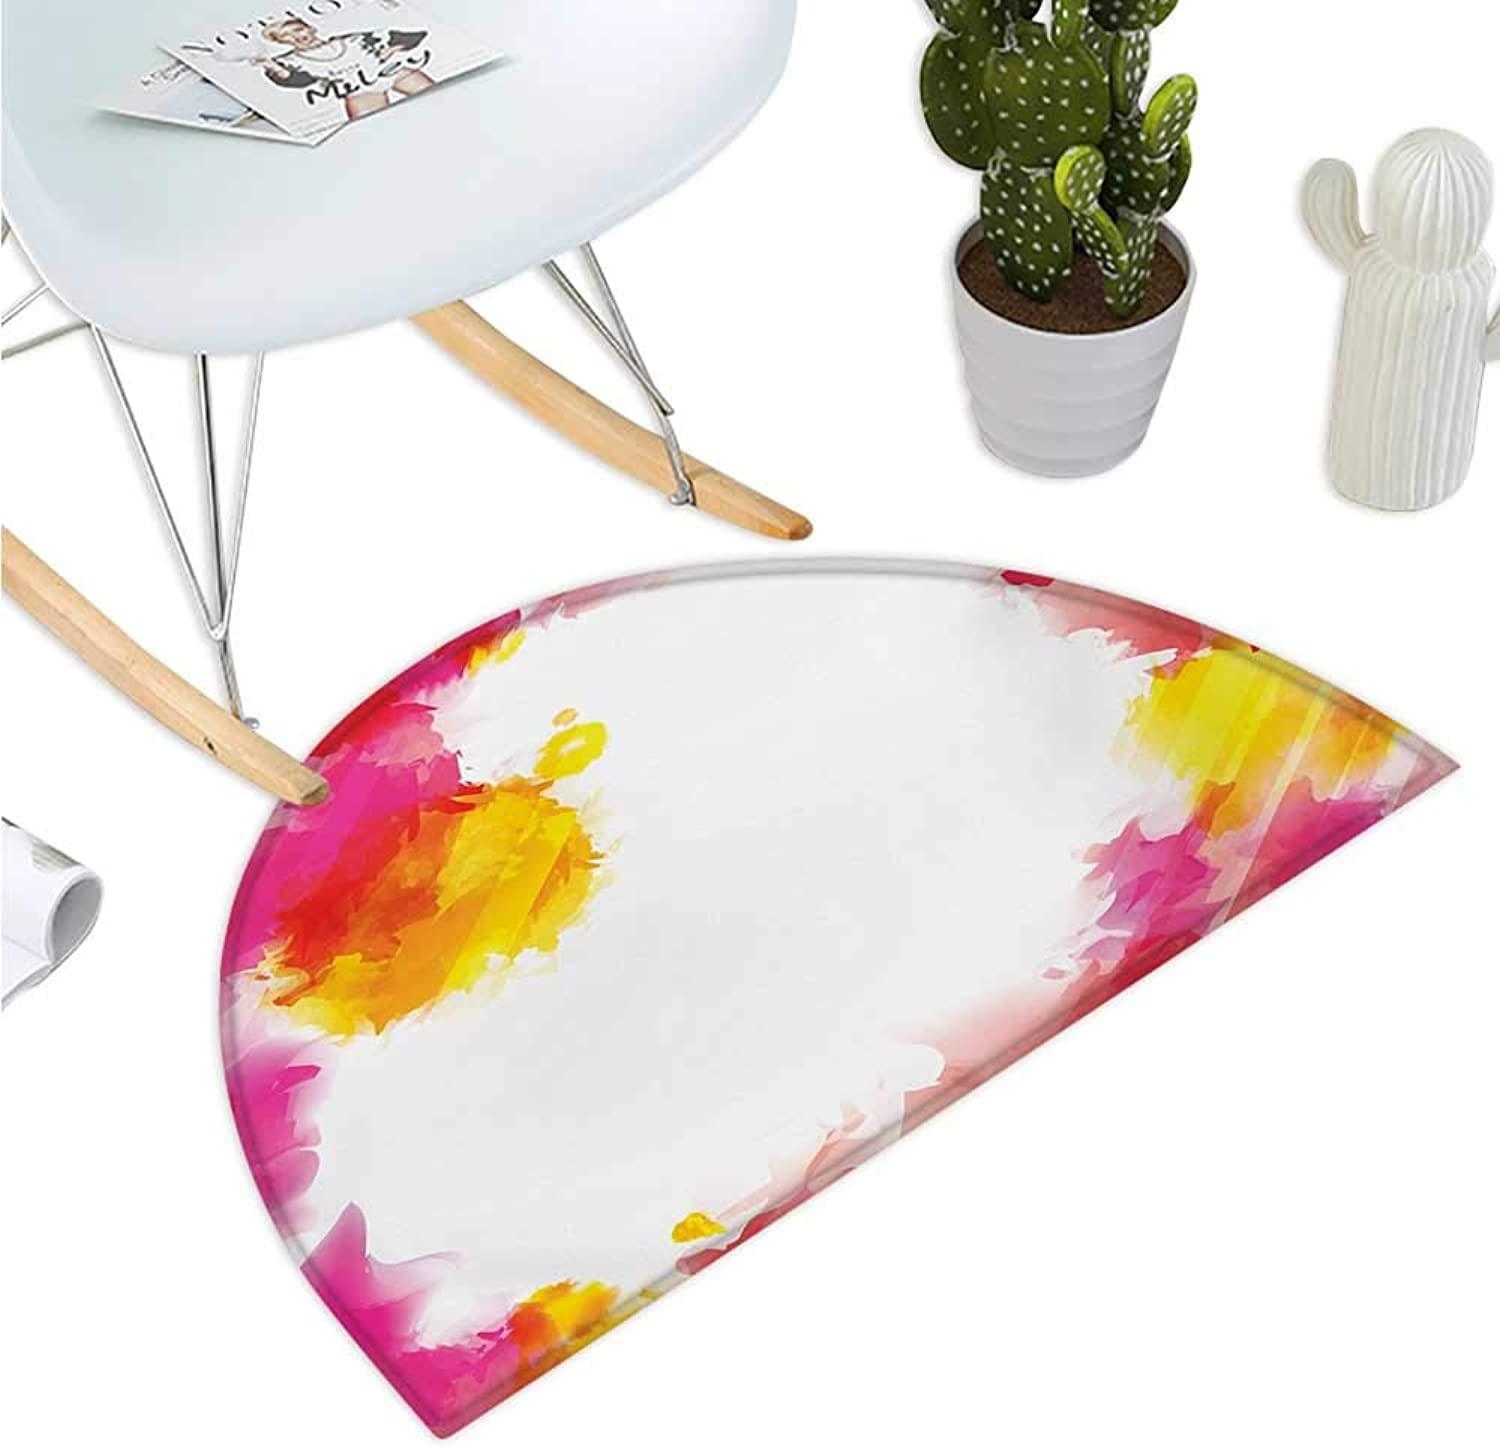 Abstract Semicircle Doormat Framework with Watercolor Vibrant Paint Splashes Artistic Creativity Themed Print Entry Door Mat H 43.3  xD 64.9  Multicolor